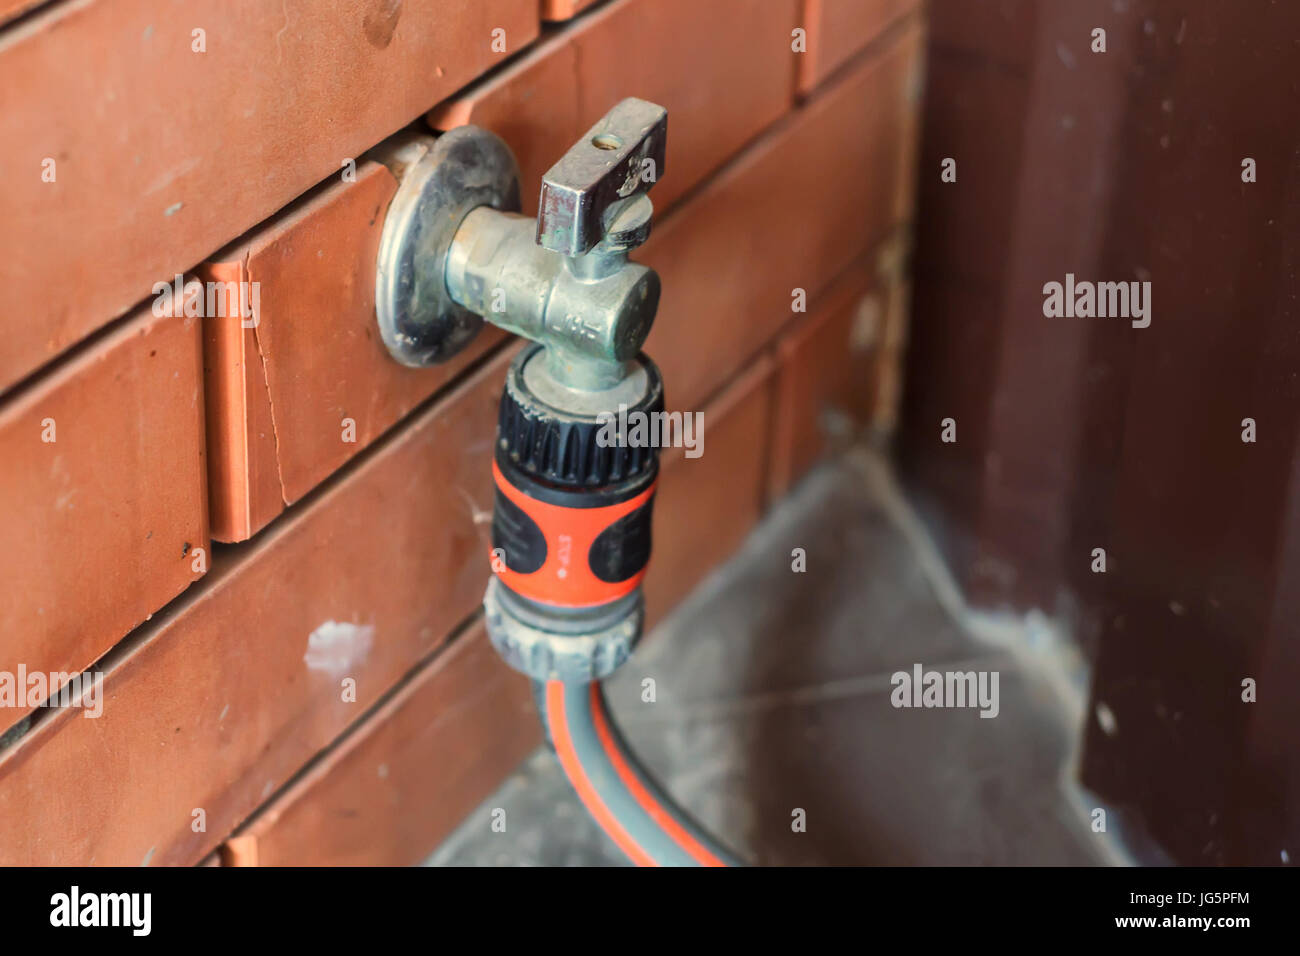 Garden tap with hose attached to it - Stock Image